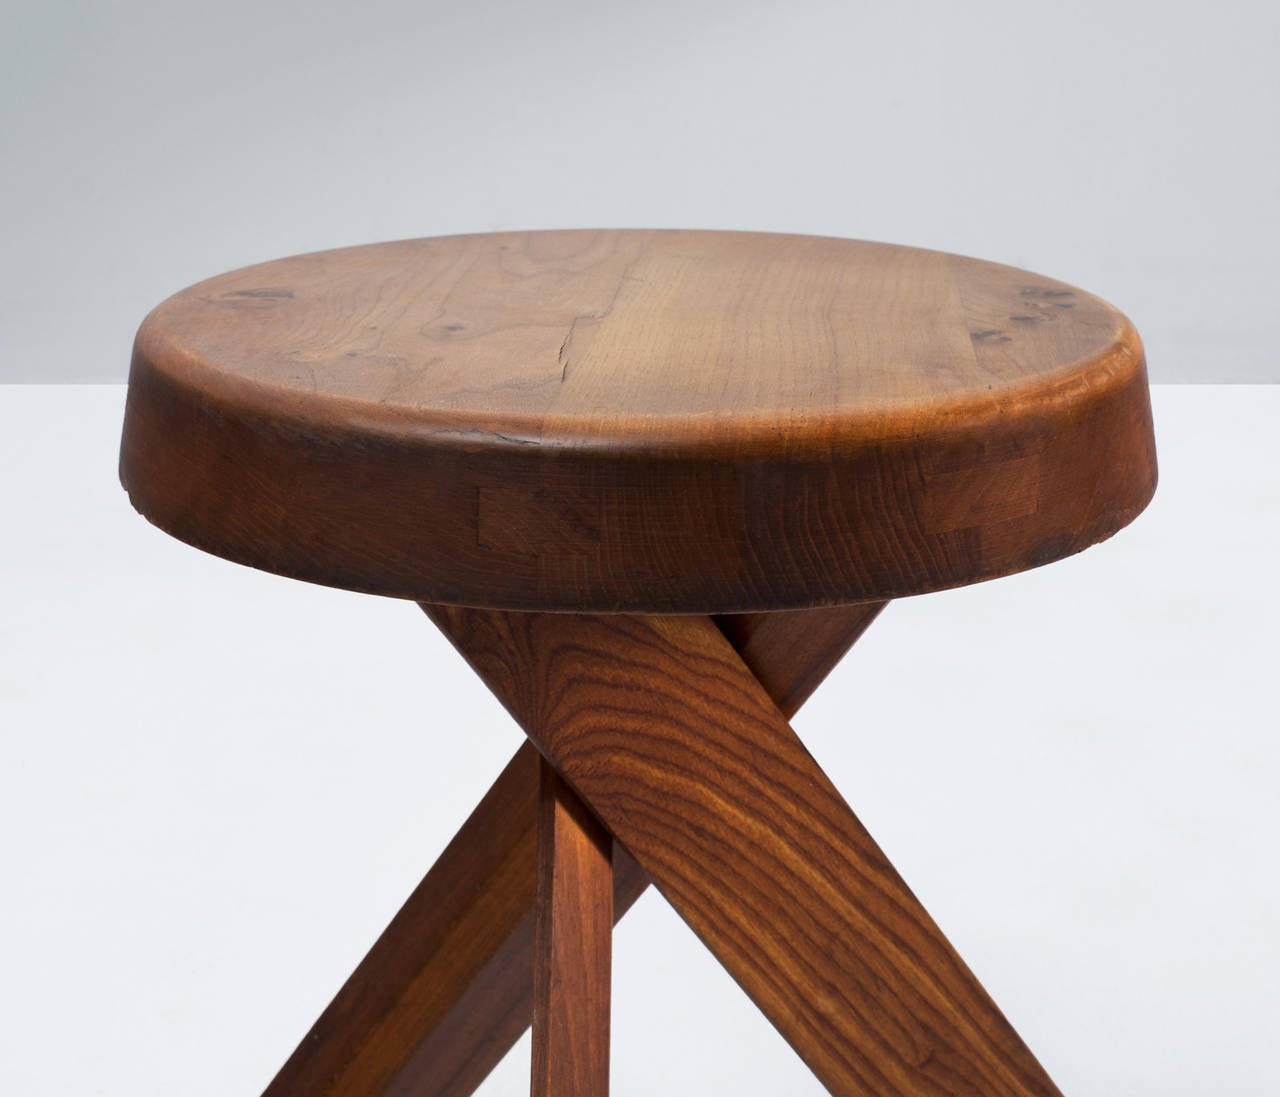 John Widdicomb Furniture For Sale Pierre Chapo Round Table and Four Stools For Sale at 1stdibs